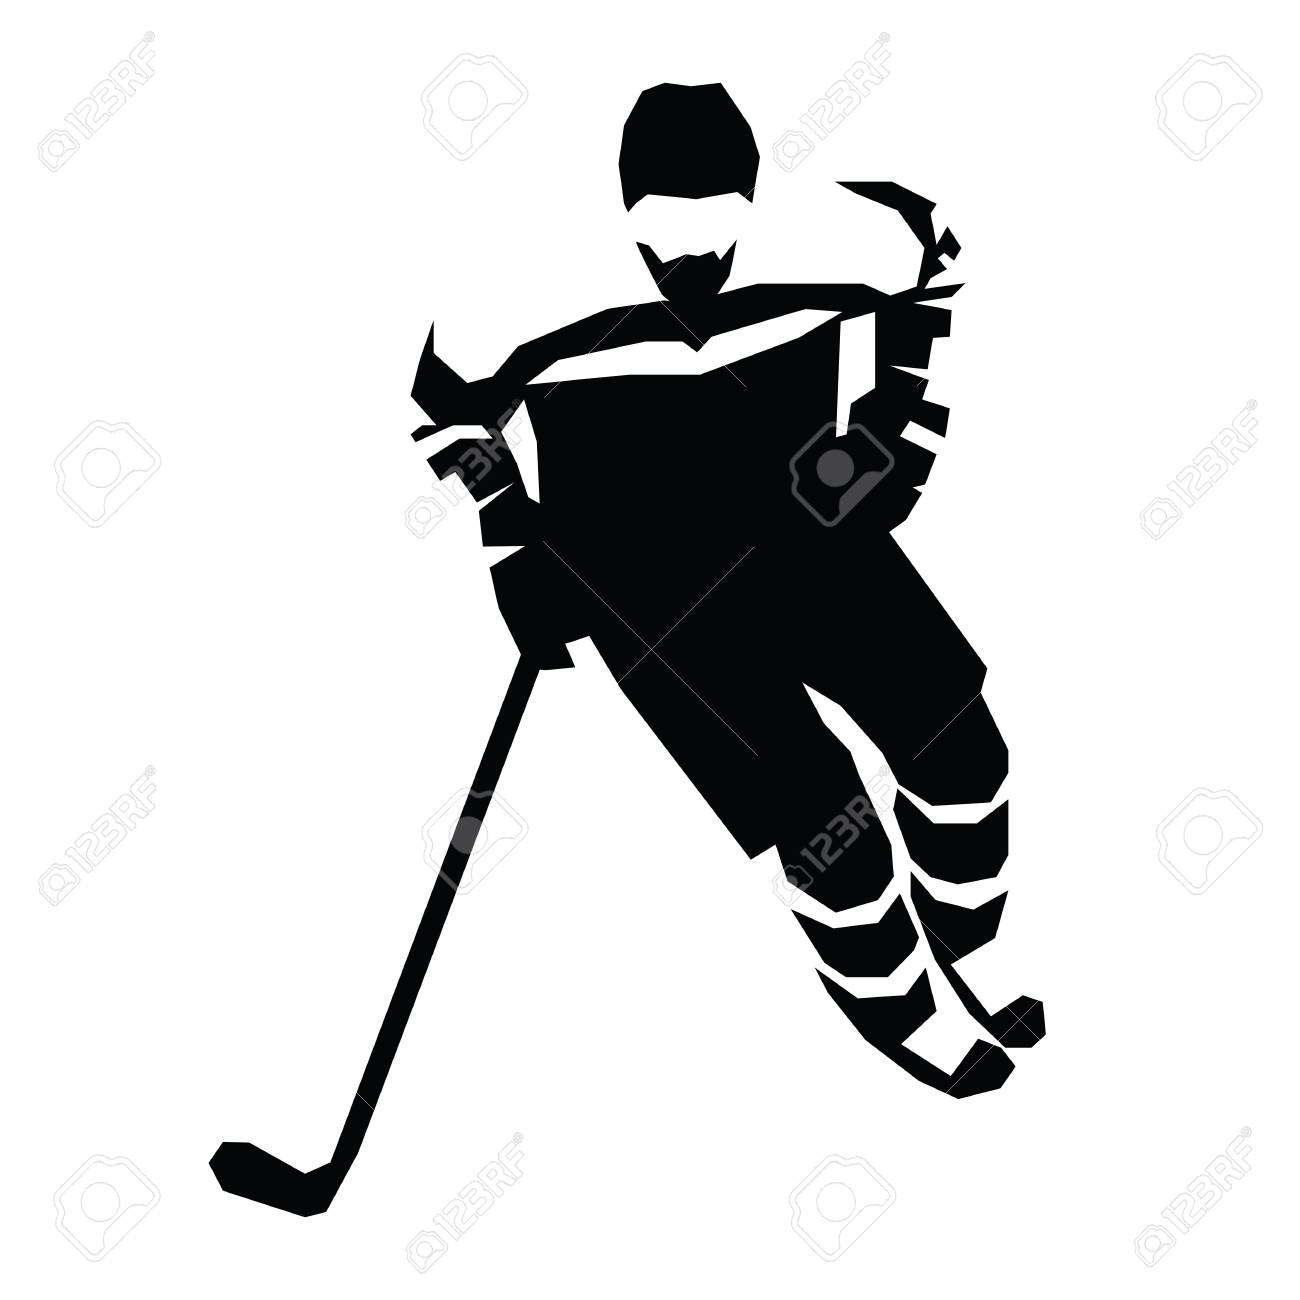 1300x1300 Ice Hockey Flat Vector Illustration. Hockey Player Silhouette